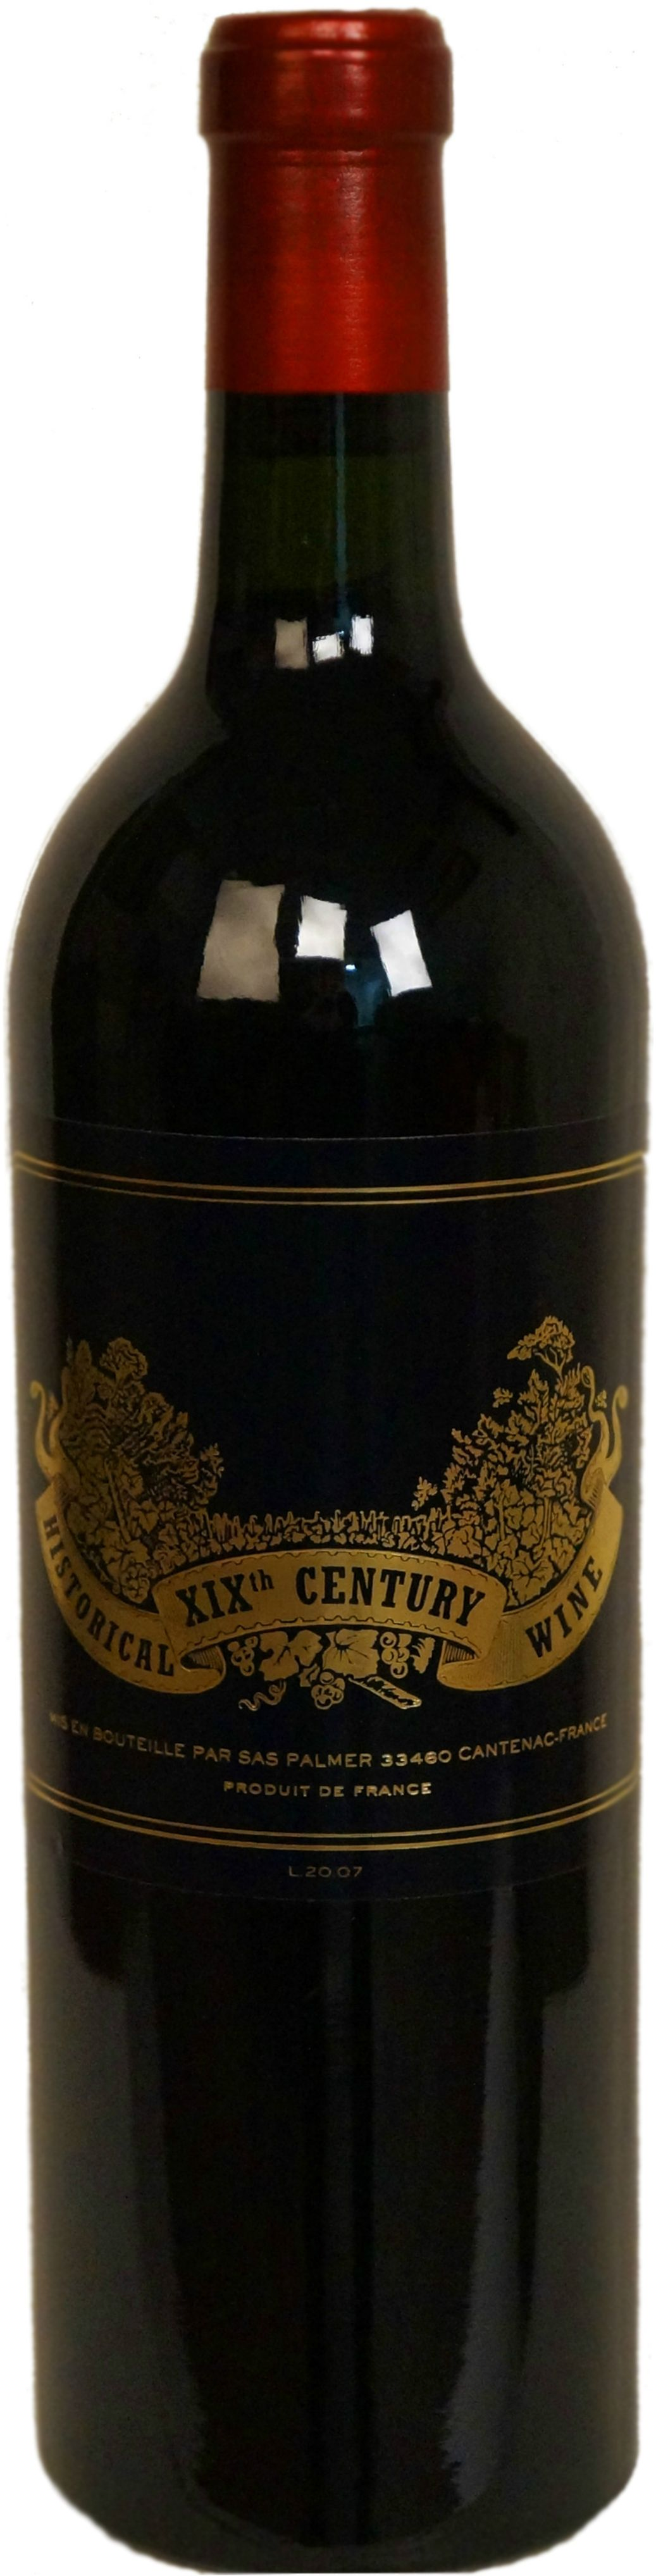 Chateau Palmer, Historical Wine XIX Century